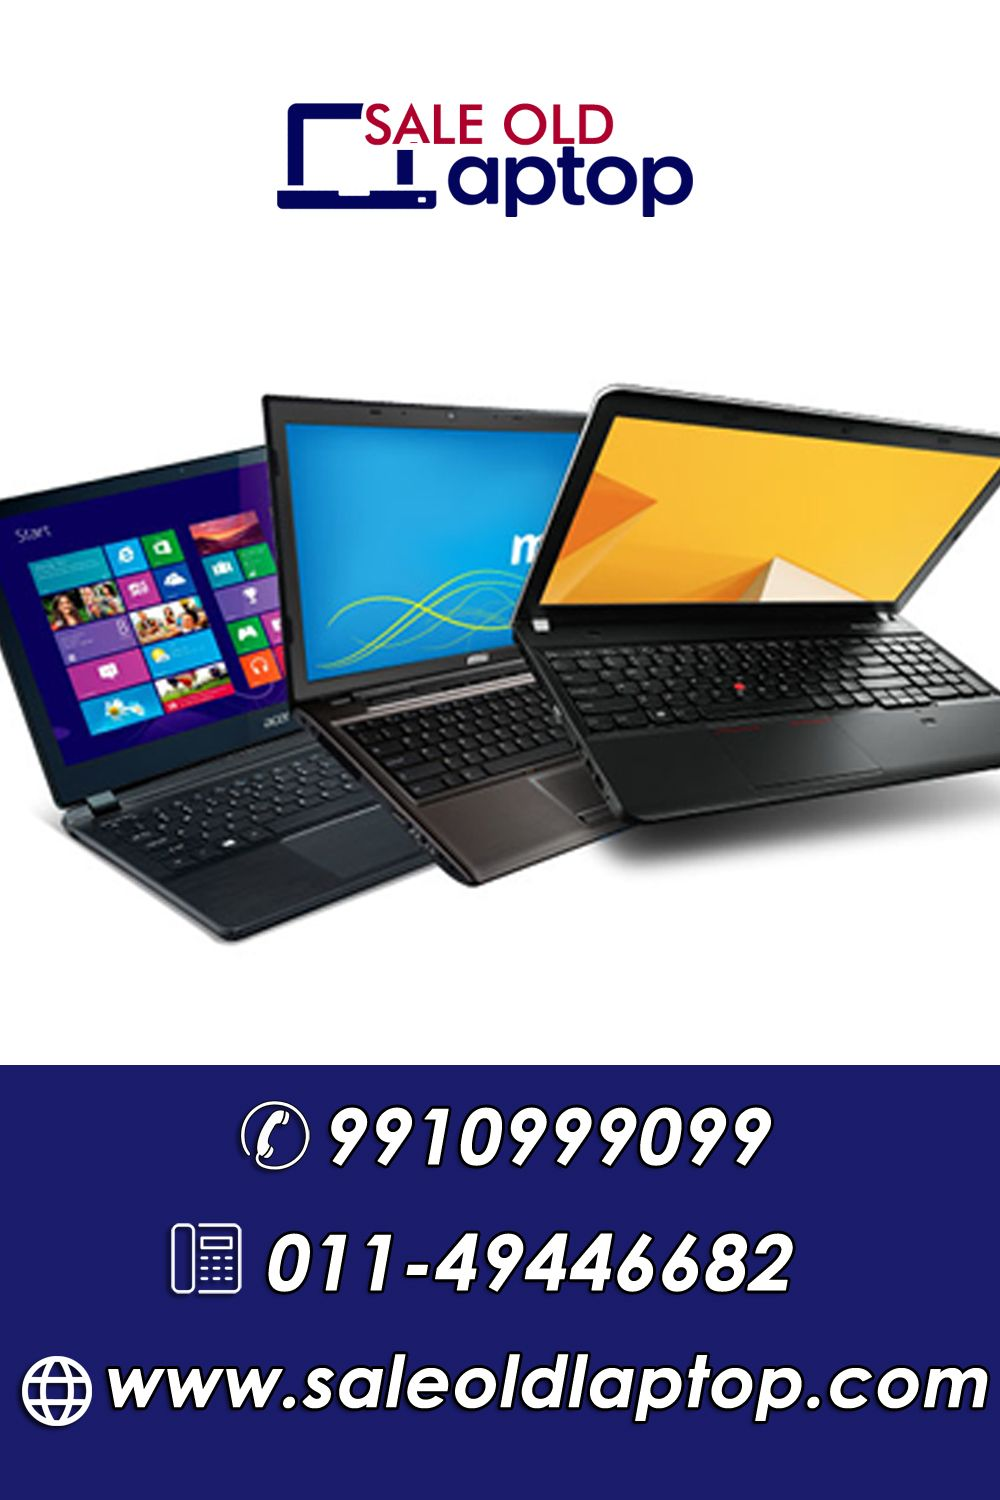 Get Dell Latitude E6430 Core i5 3rd Gen Laptop on sale in Allahabad